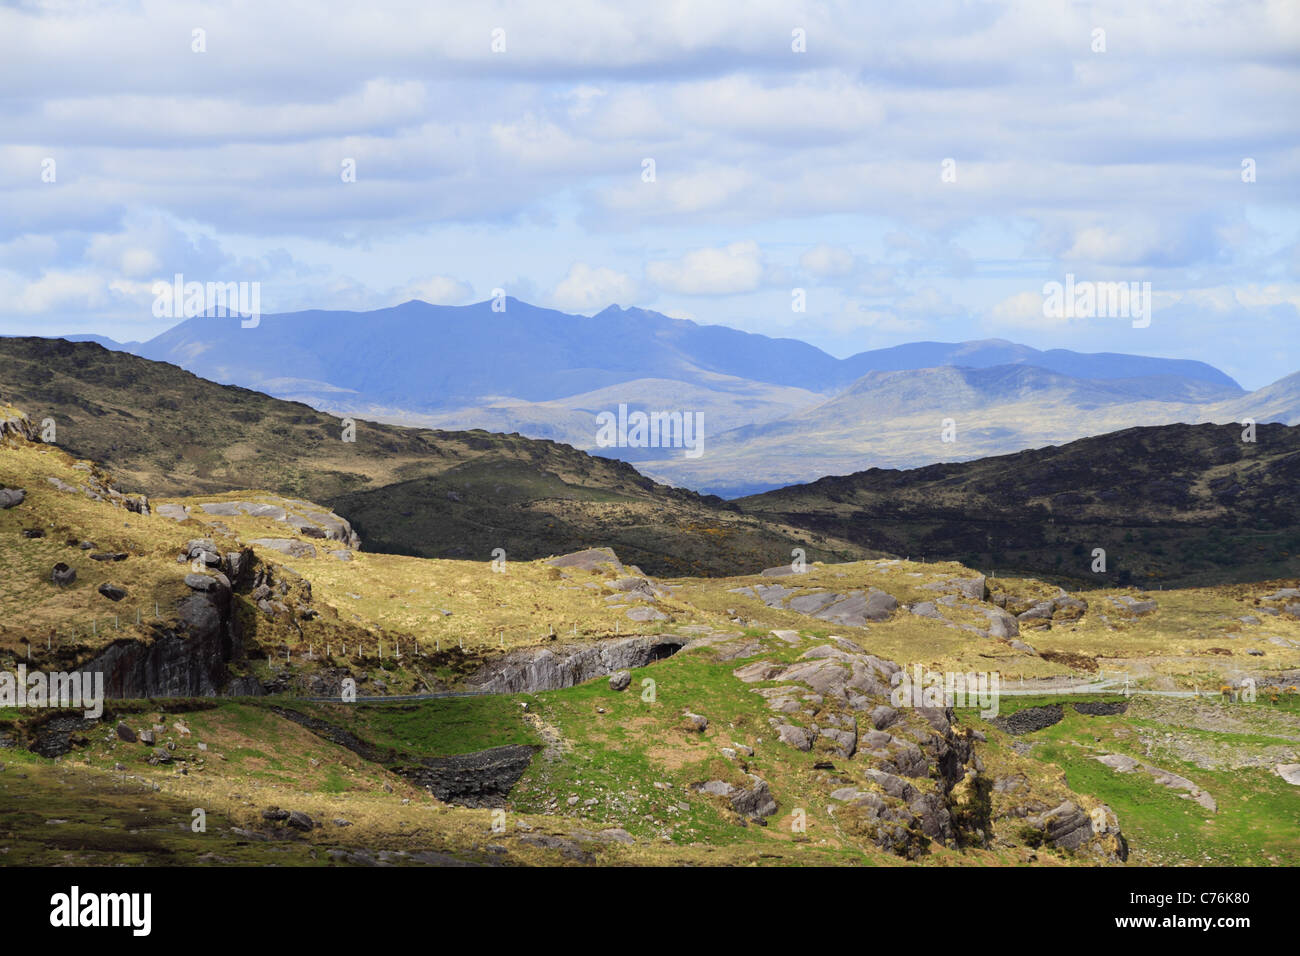 A mountain road cuts through the hills of Kerry, with MacGillycuddy's Reeks in the background, the highest mountains - Stock Image